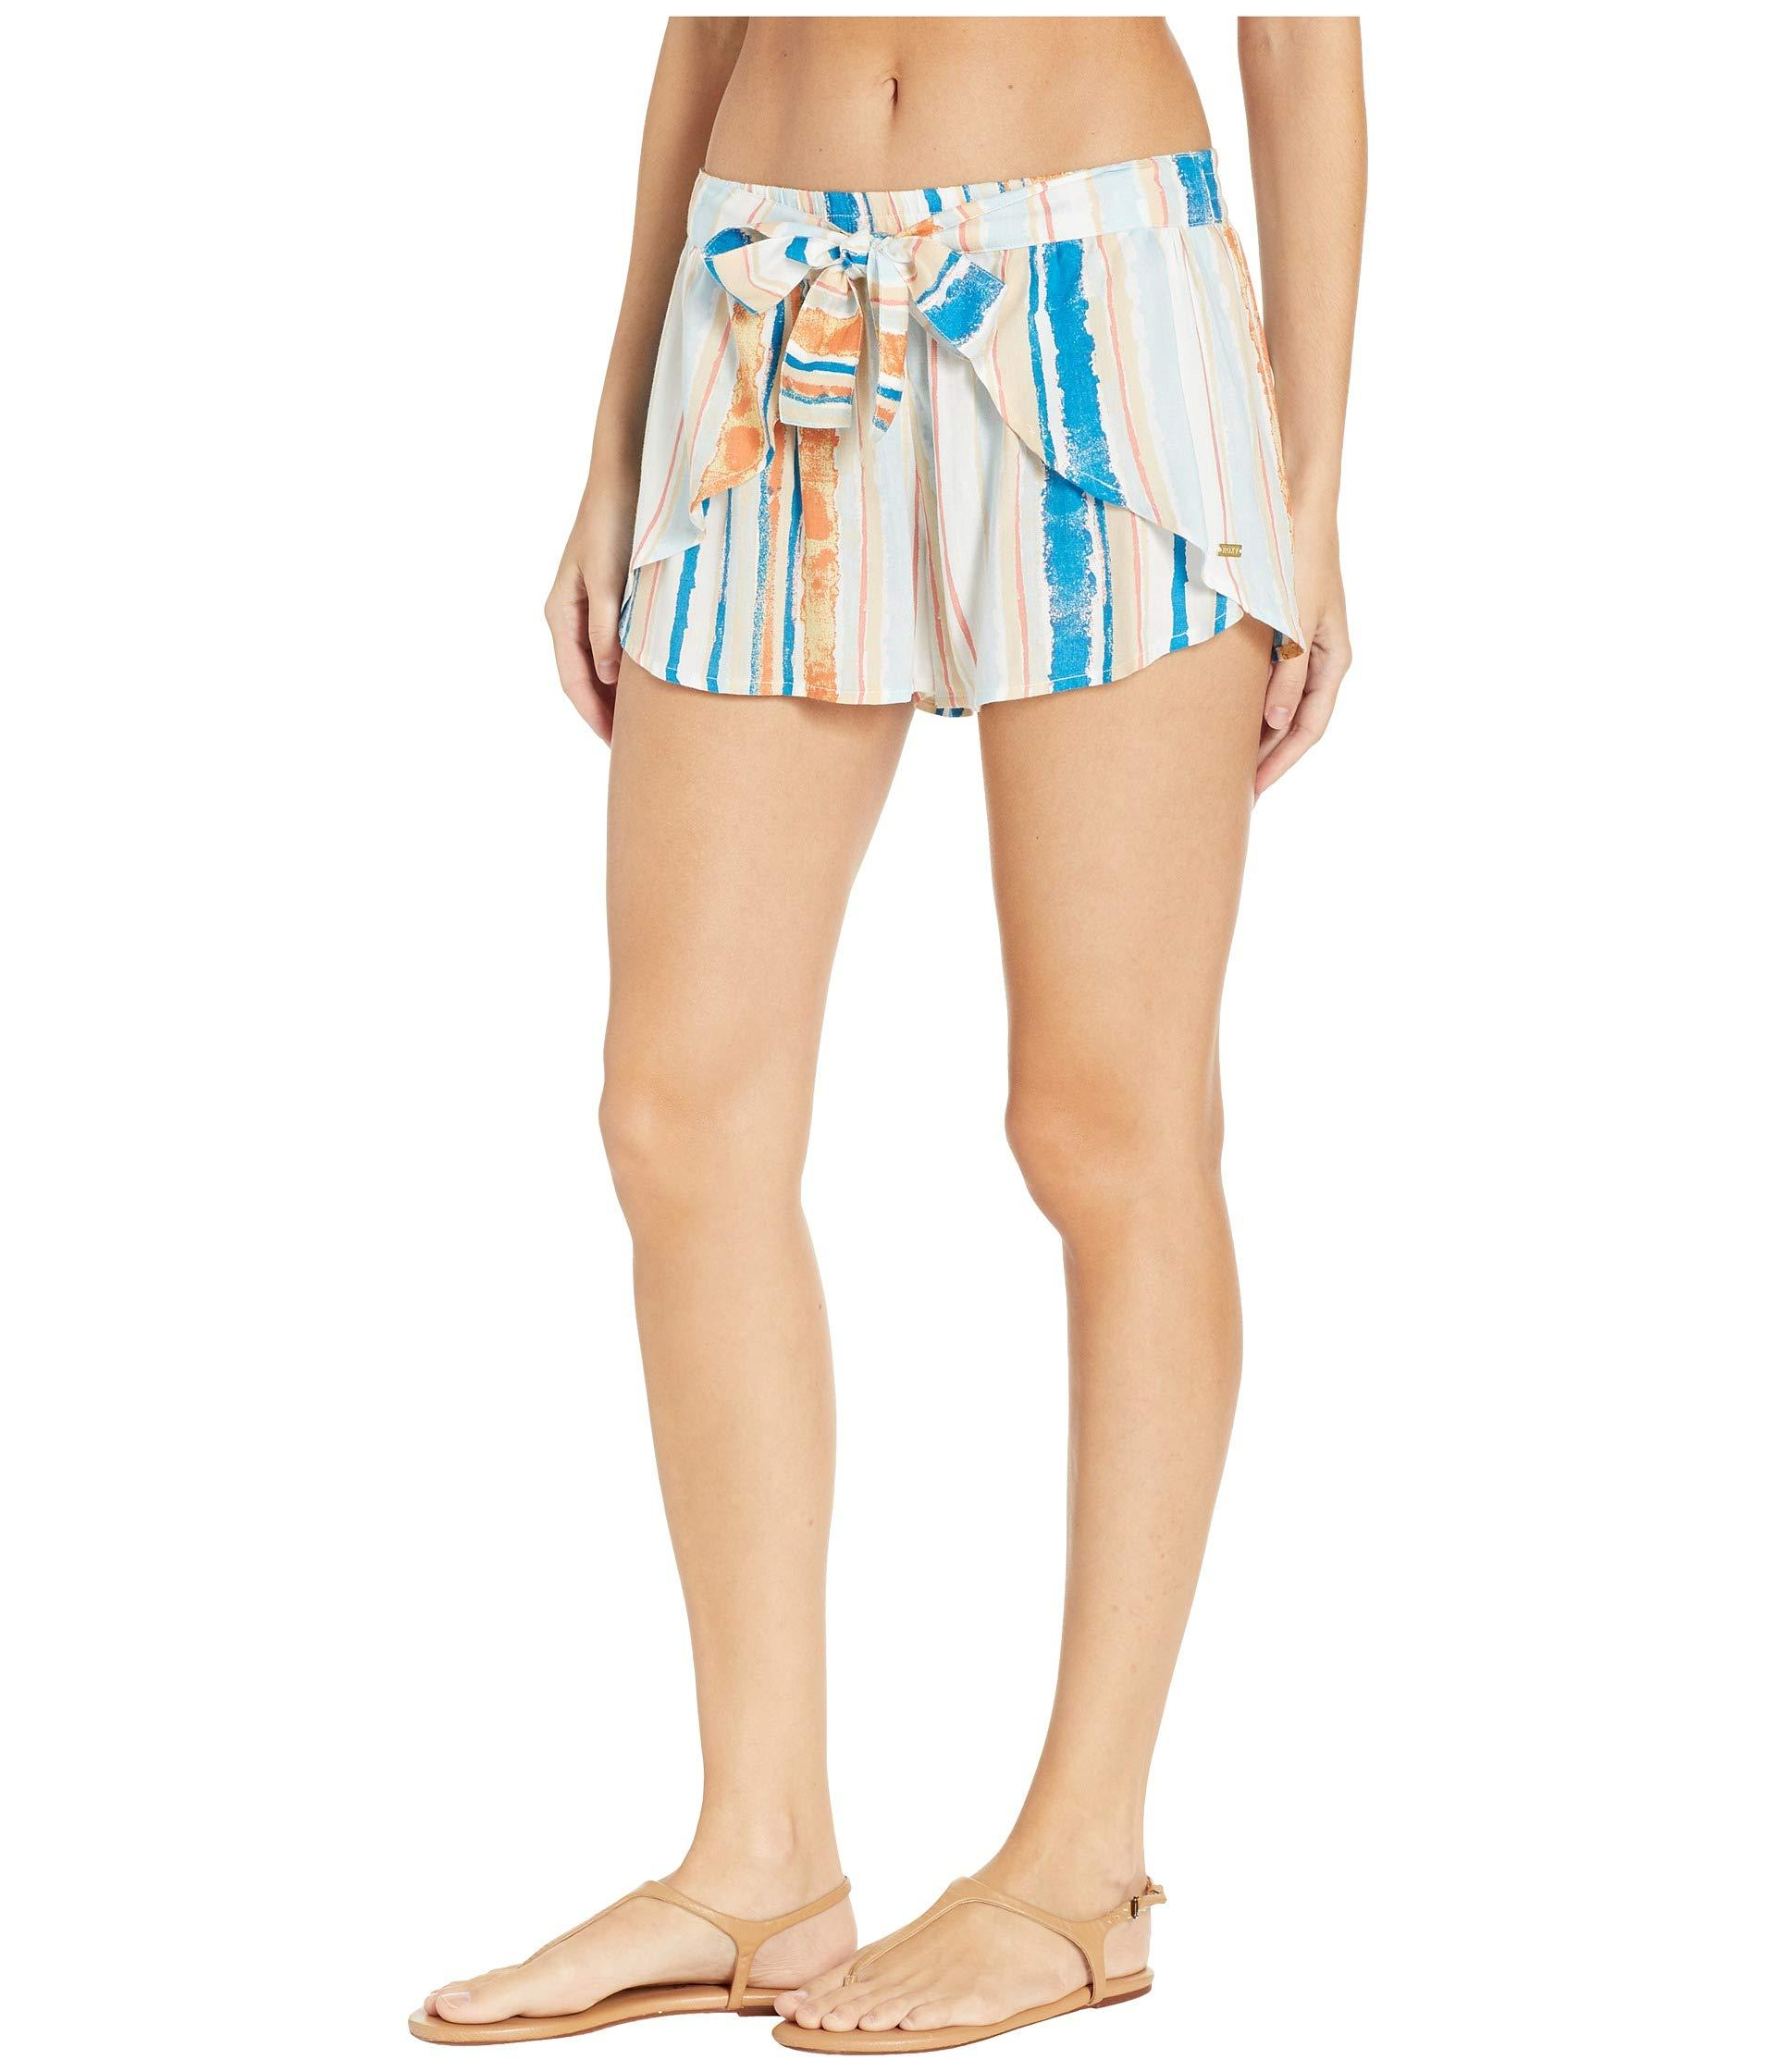 bff05136f8aafb Lyst - Roxy Lemon Chill Shorts Cover-up (anthracite New Flowers) Women's  Swimwear in White